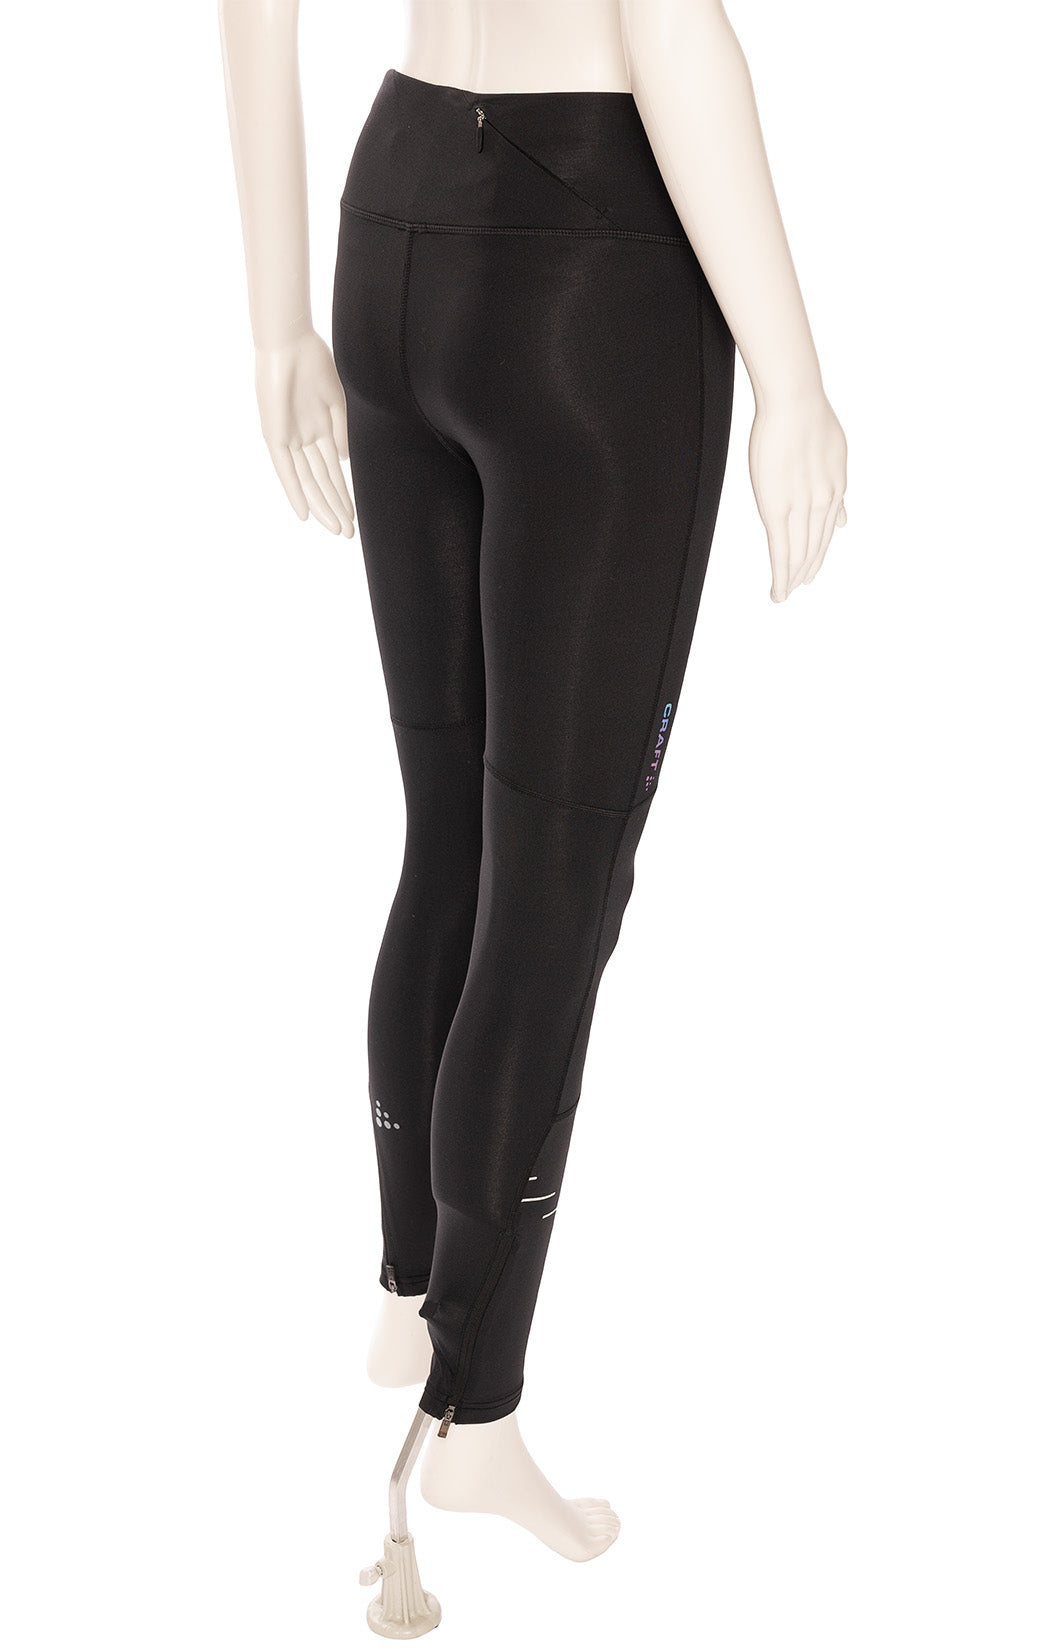 Black leggings with design and zippers at bottom hemline